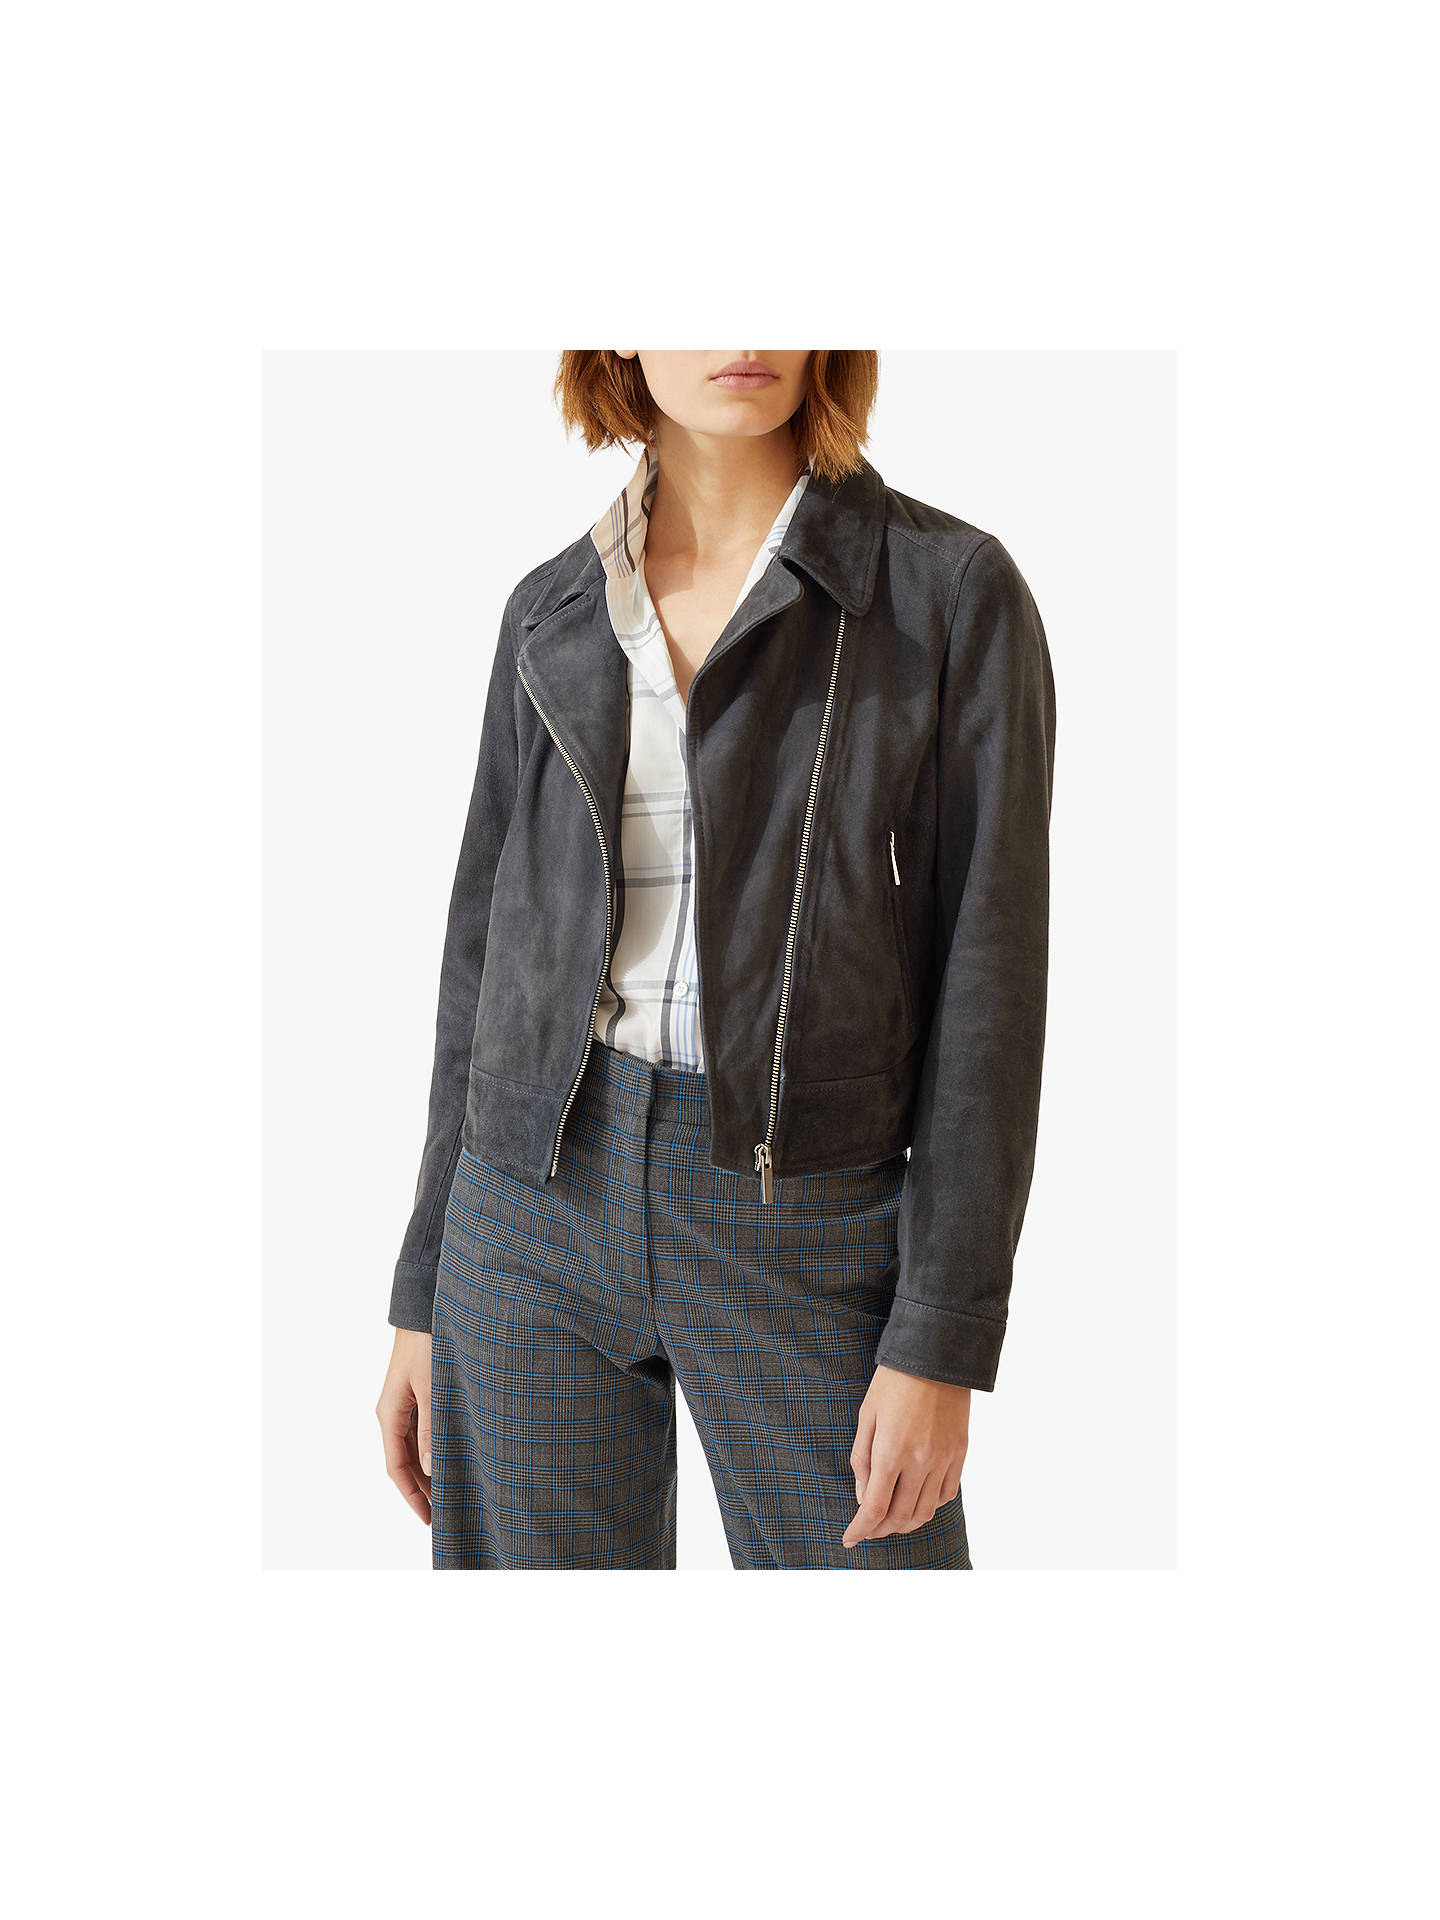 7e25388a1 Jigsaw Suede Biker Jacket, Gravel at John Lewis & Partners